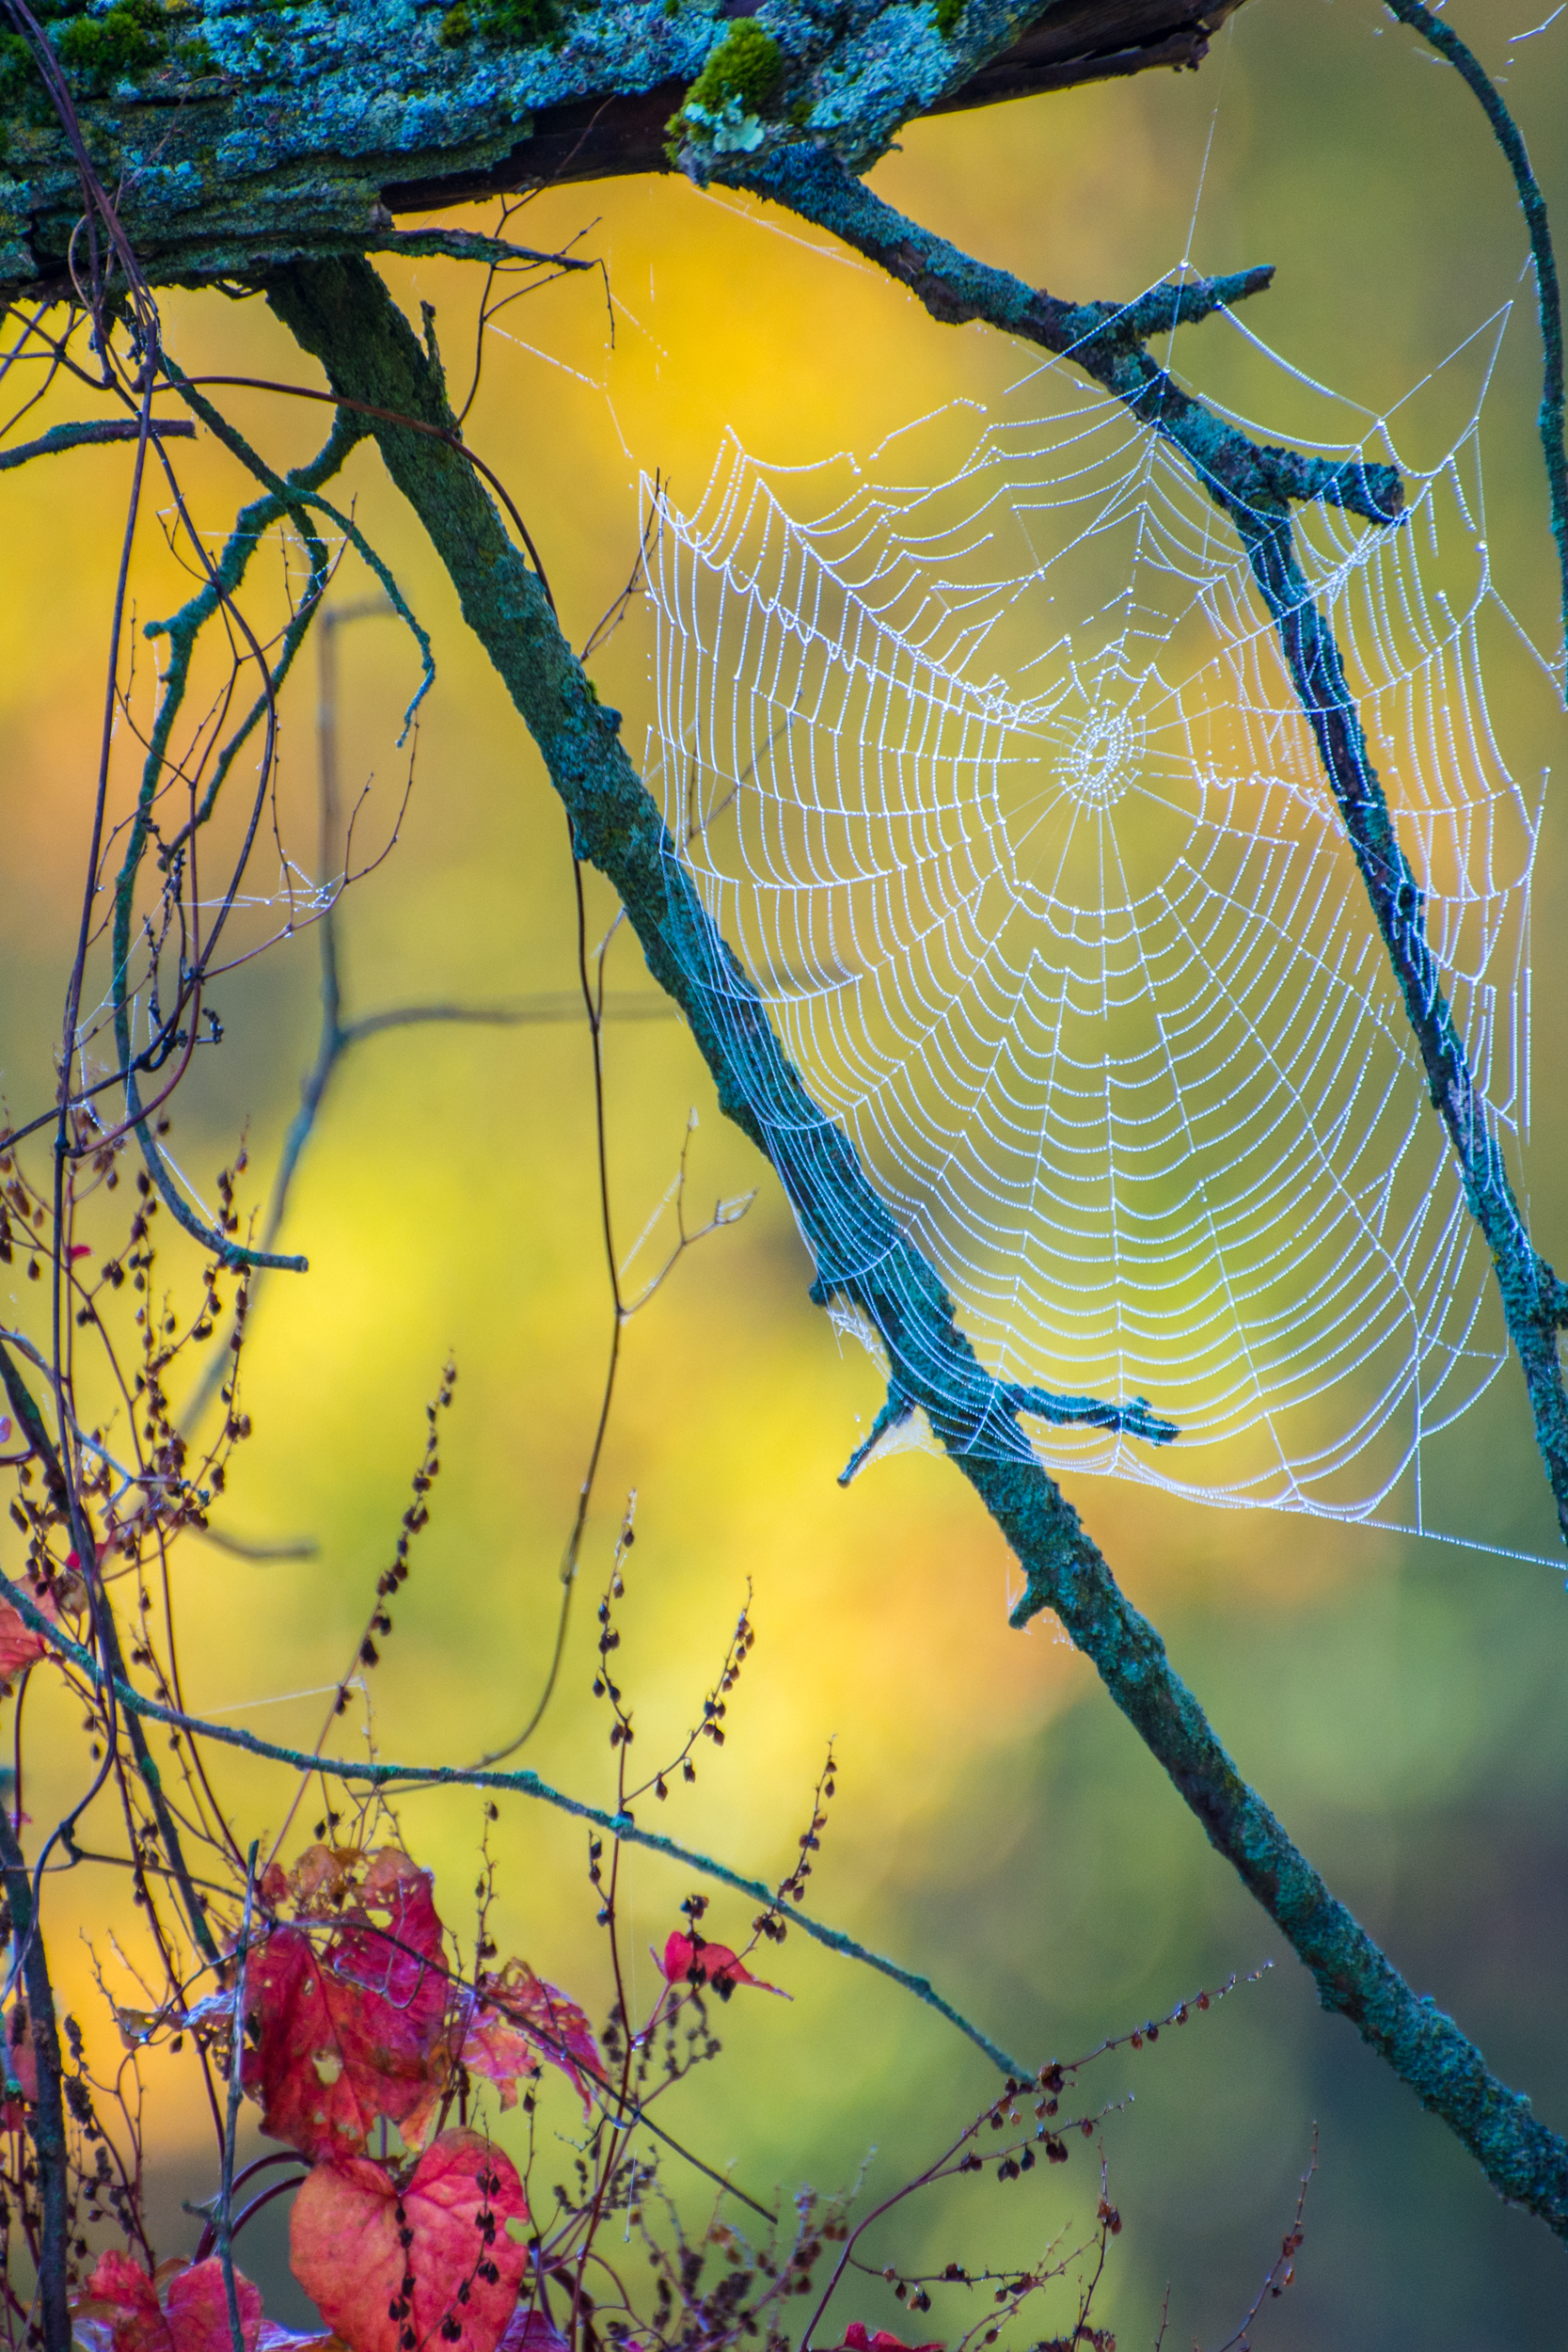 Morning dew on a spiderweb in Rochester, Vermont